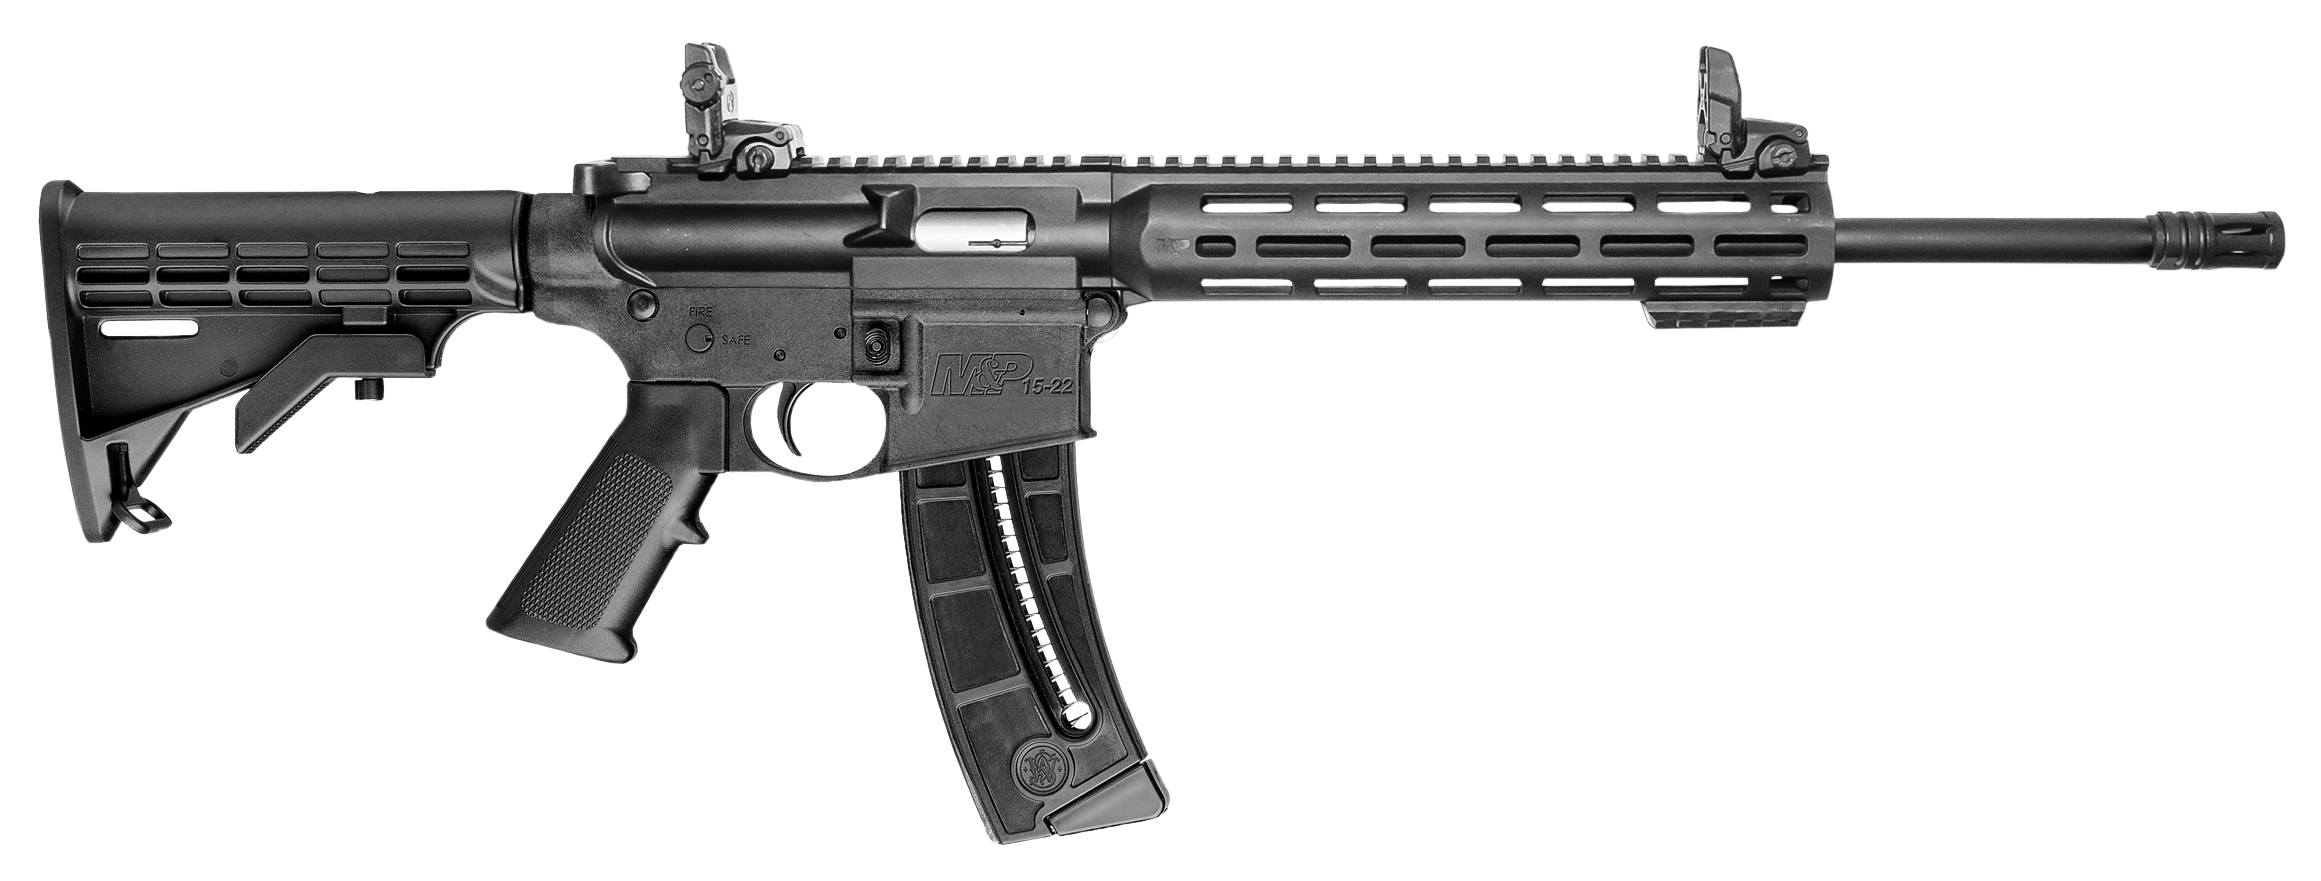 Smith & Wesson M&P M&P15-22-img-2